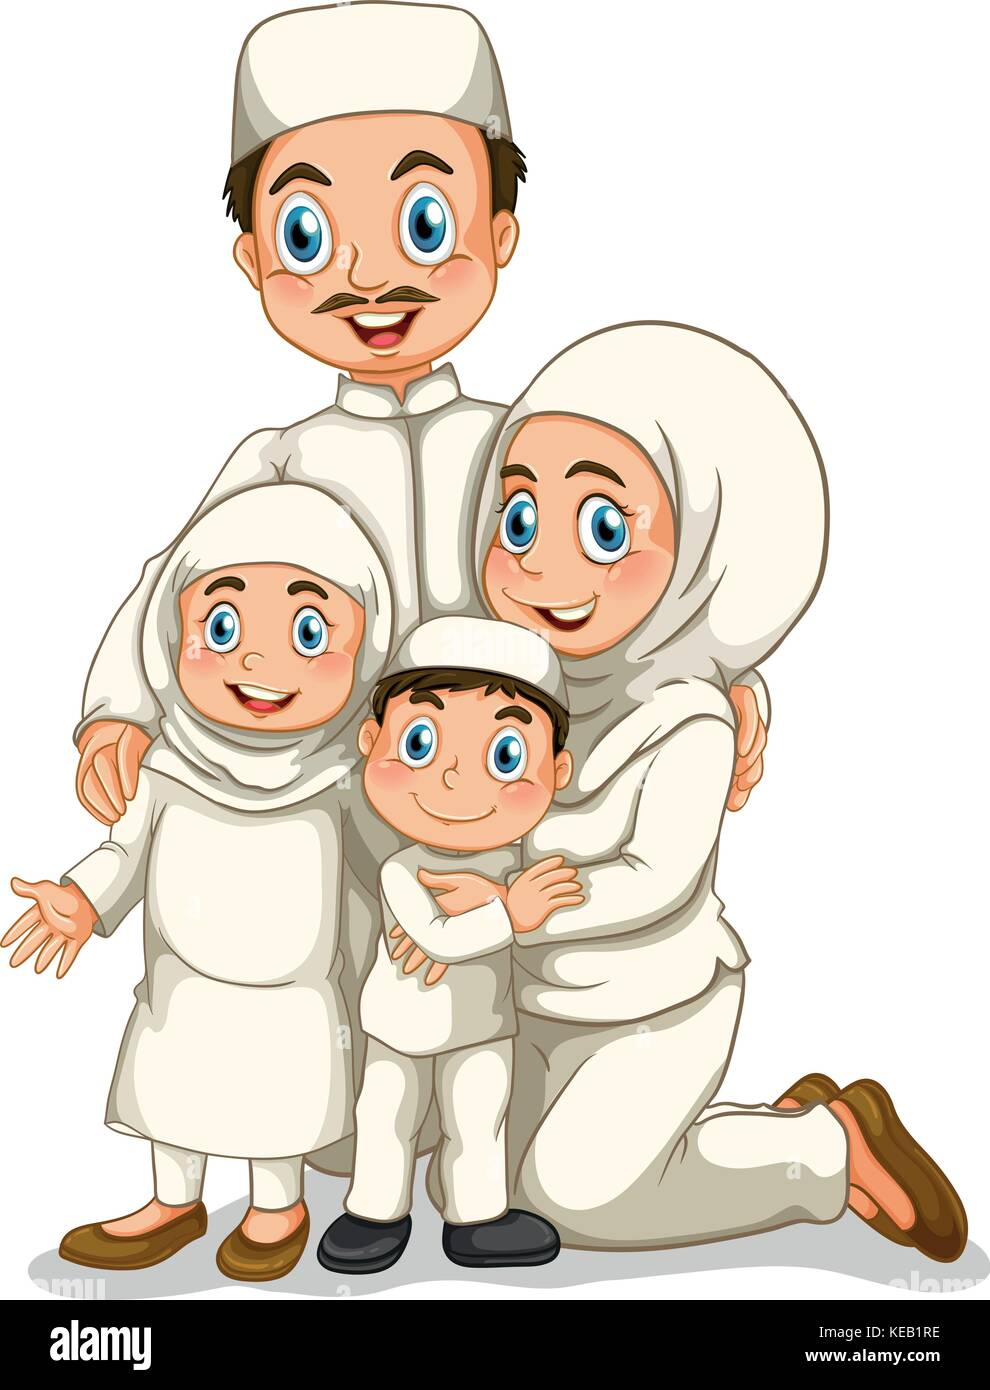 Muslim Family With Father And Mother Stock Vector Image Art Alamy